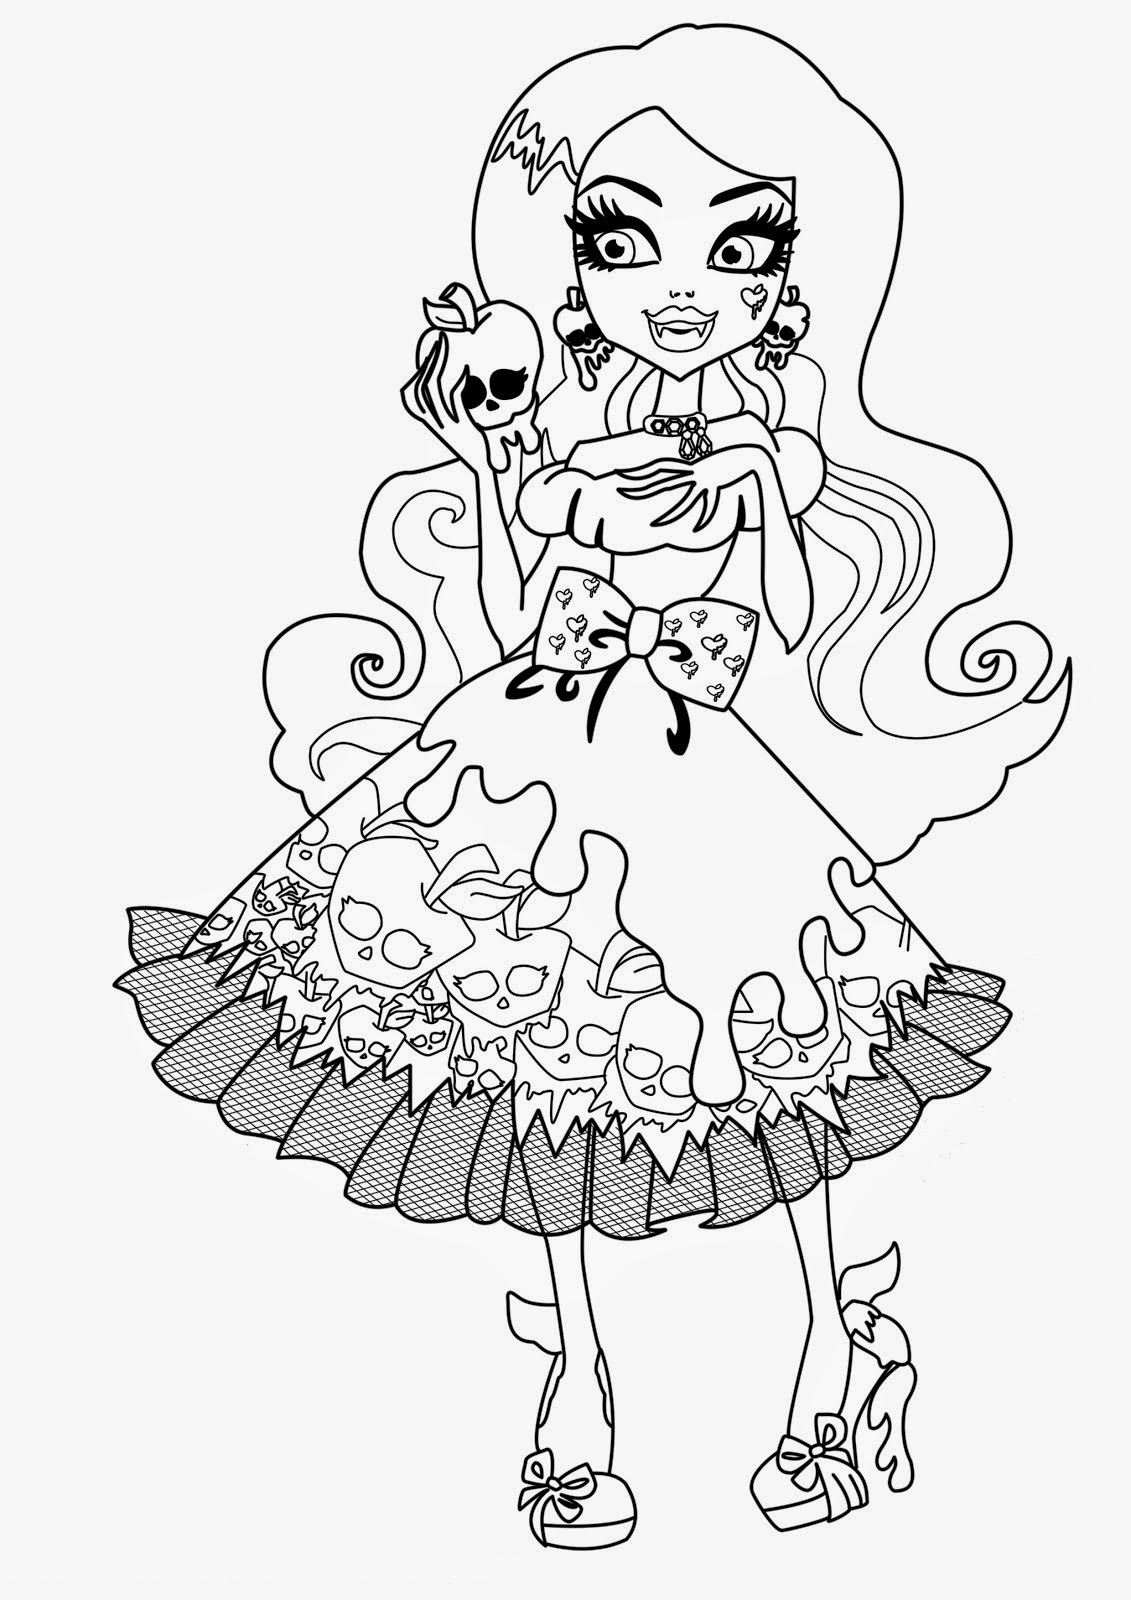 monster high free printable coloring pages free printable ghoulia yelps monster high colouring sheets free high printable monster coloring pages